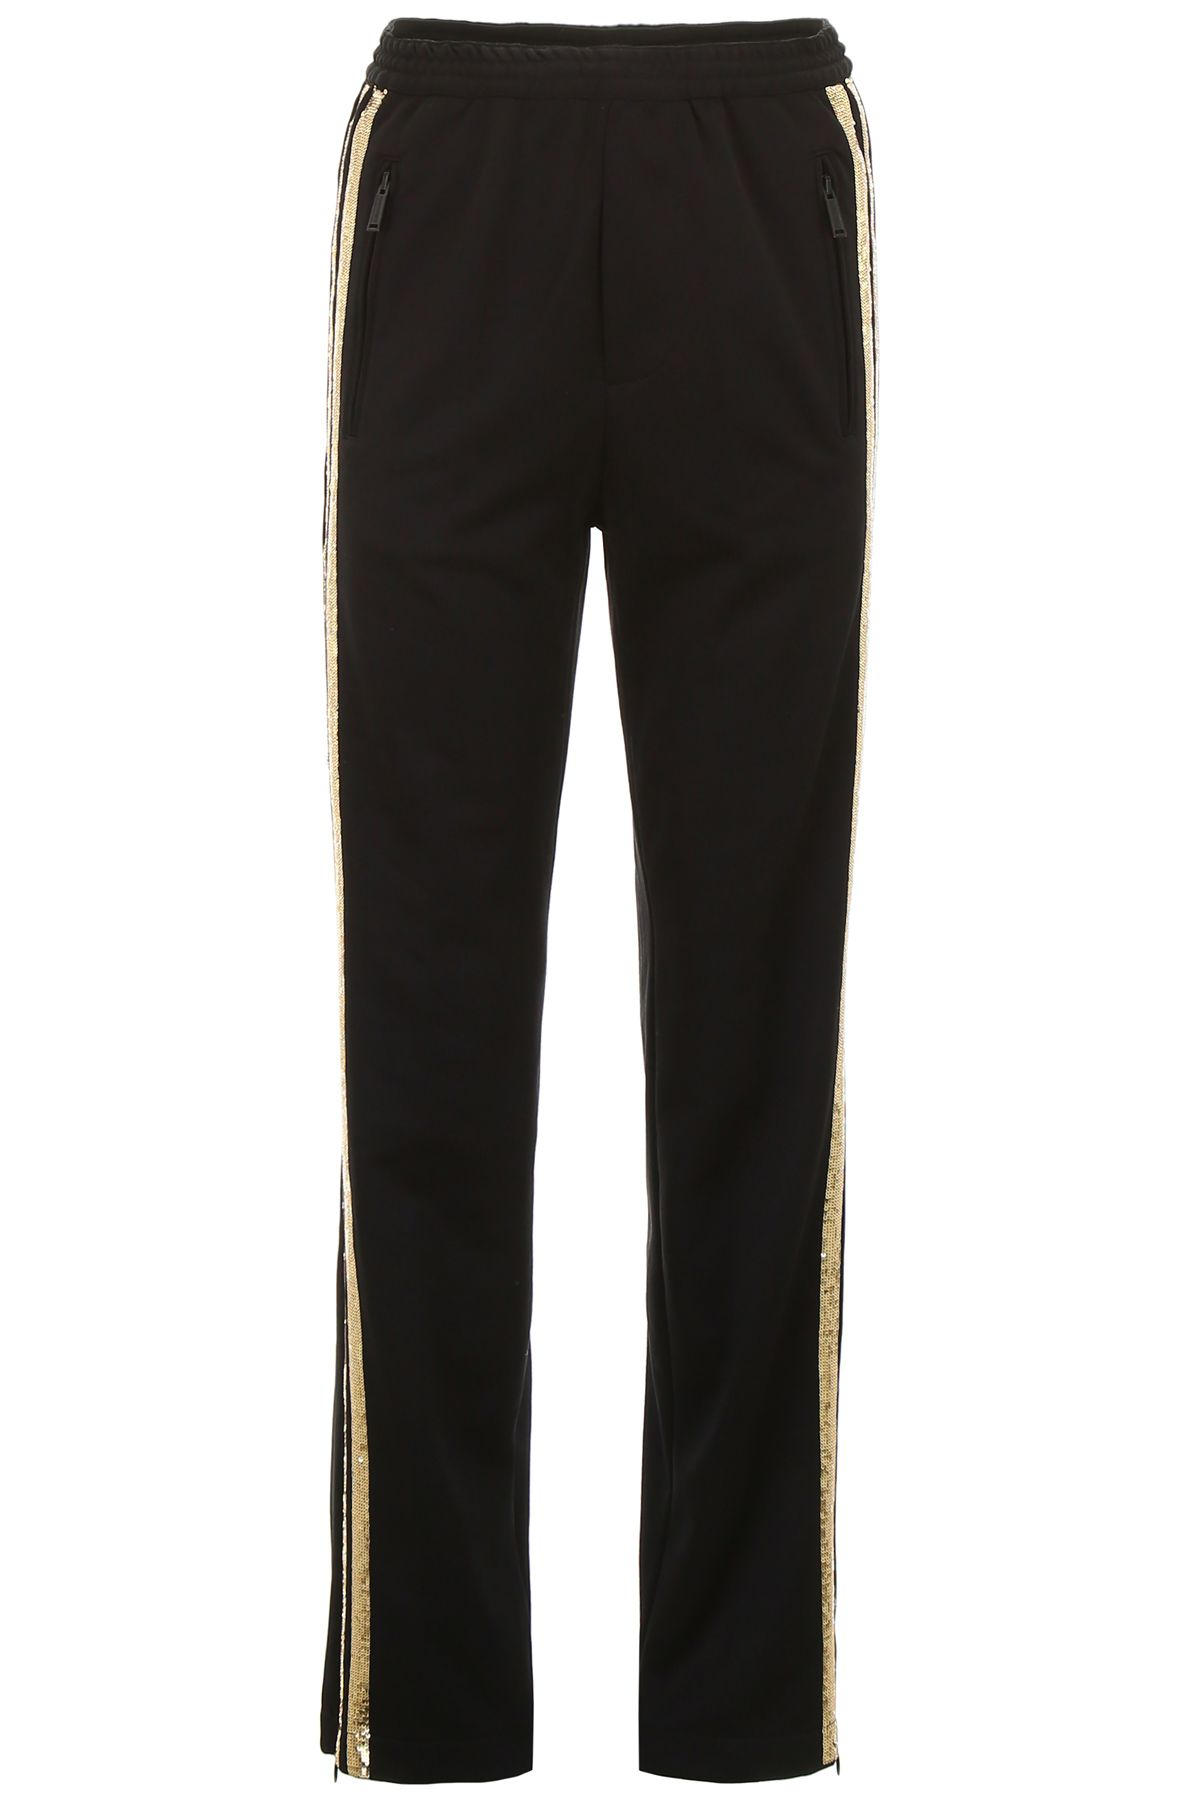 Dsquared2 Joggers With Sequins